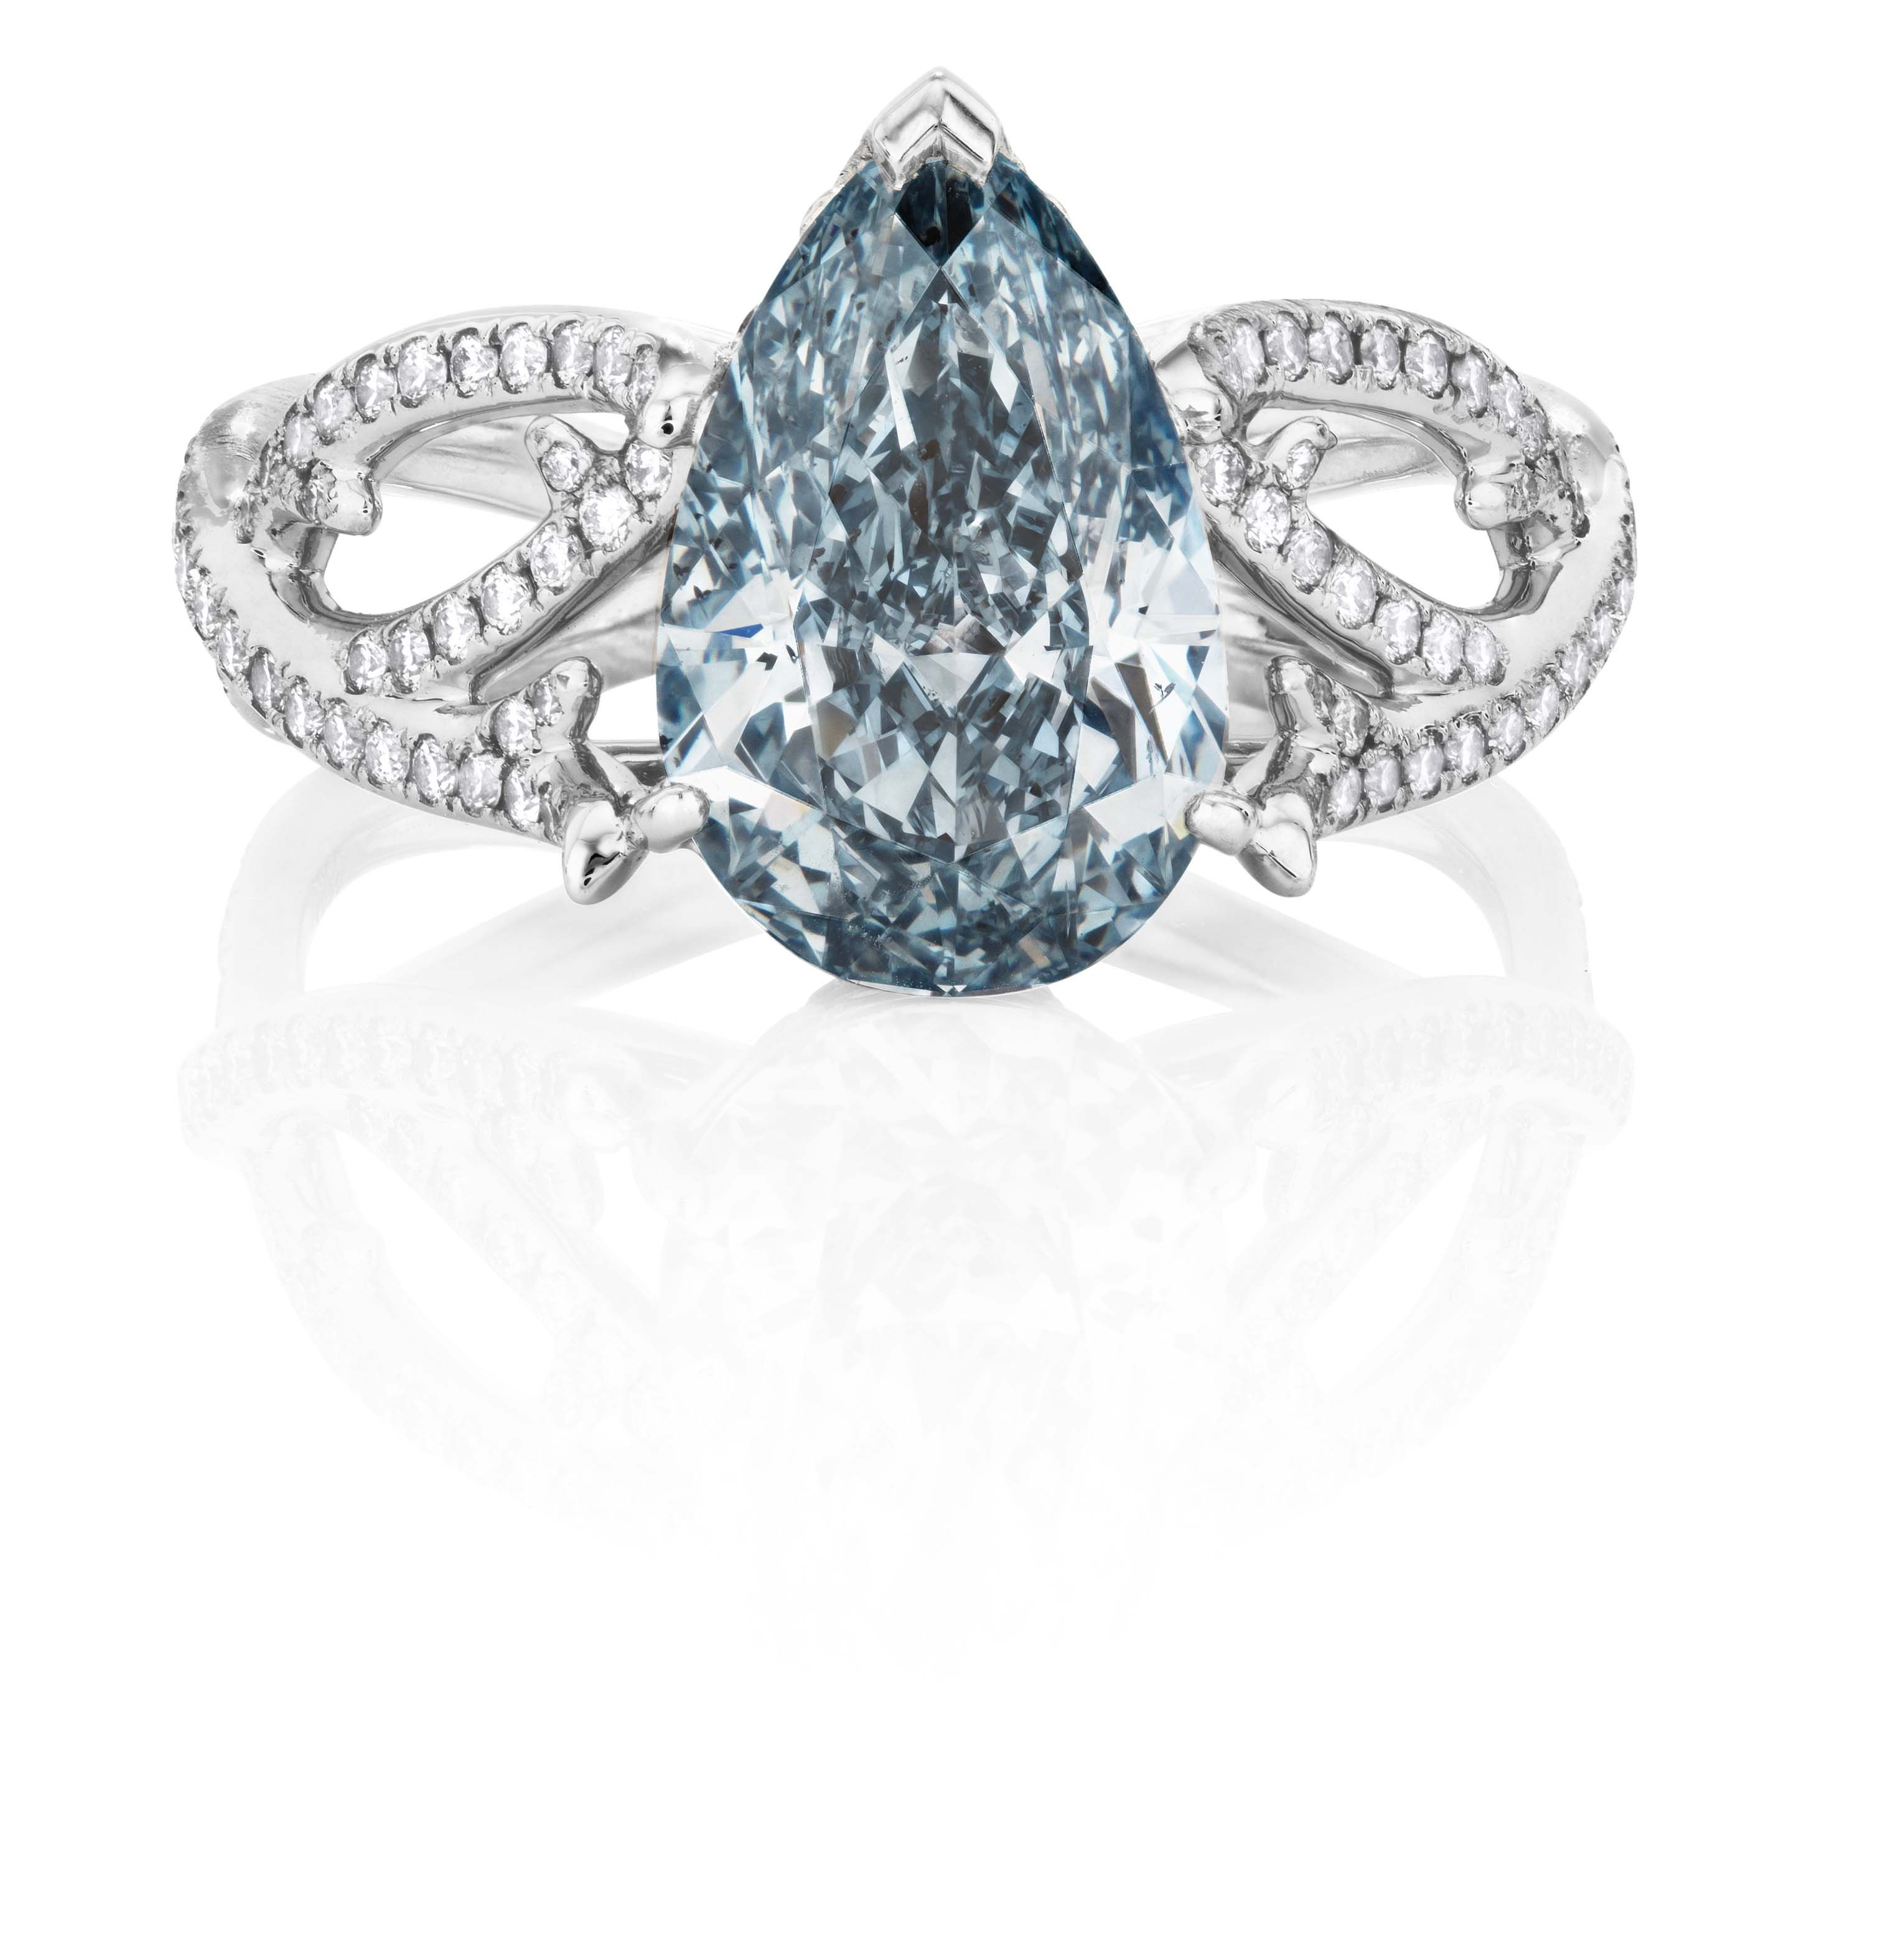 De Beers 1888 Master Diamonds Volute ring featuring a pear-shaped blue diamond solitaire